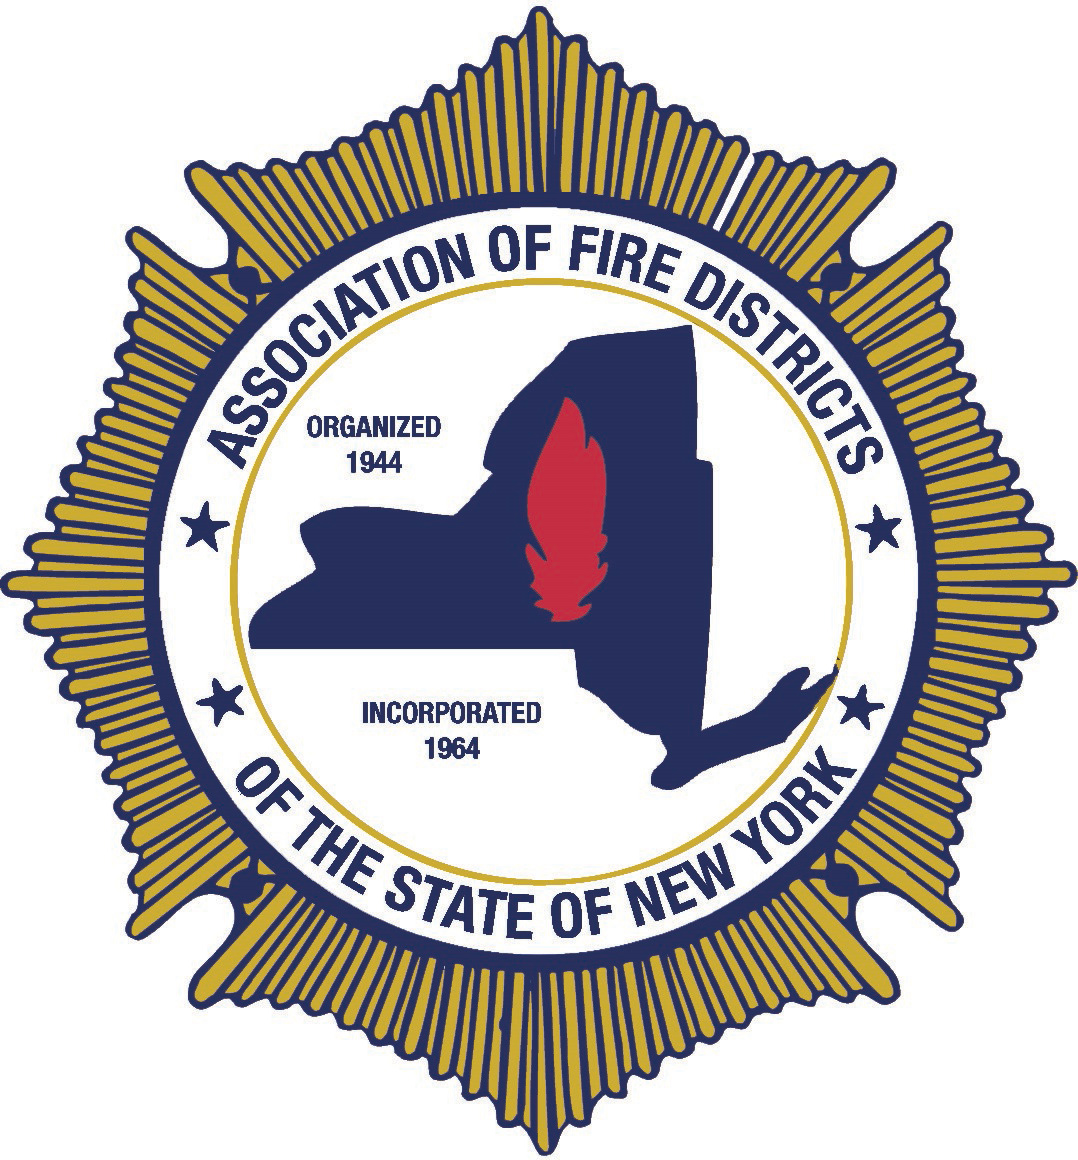 Association of Fire Districts of the State of New York